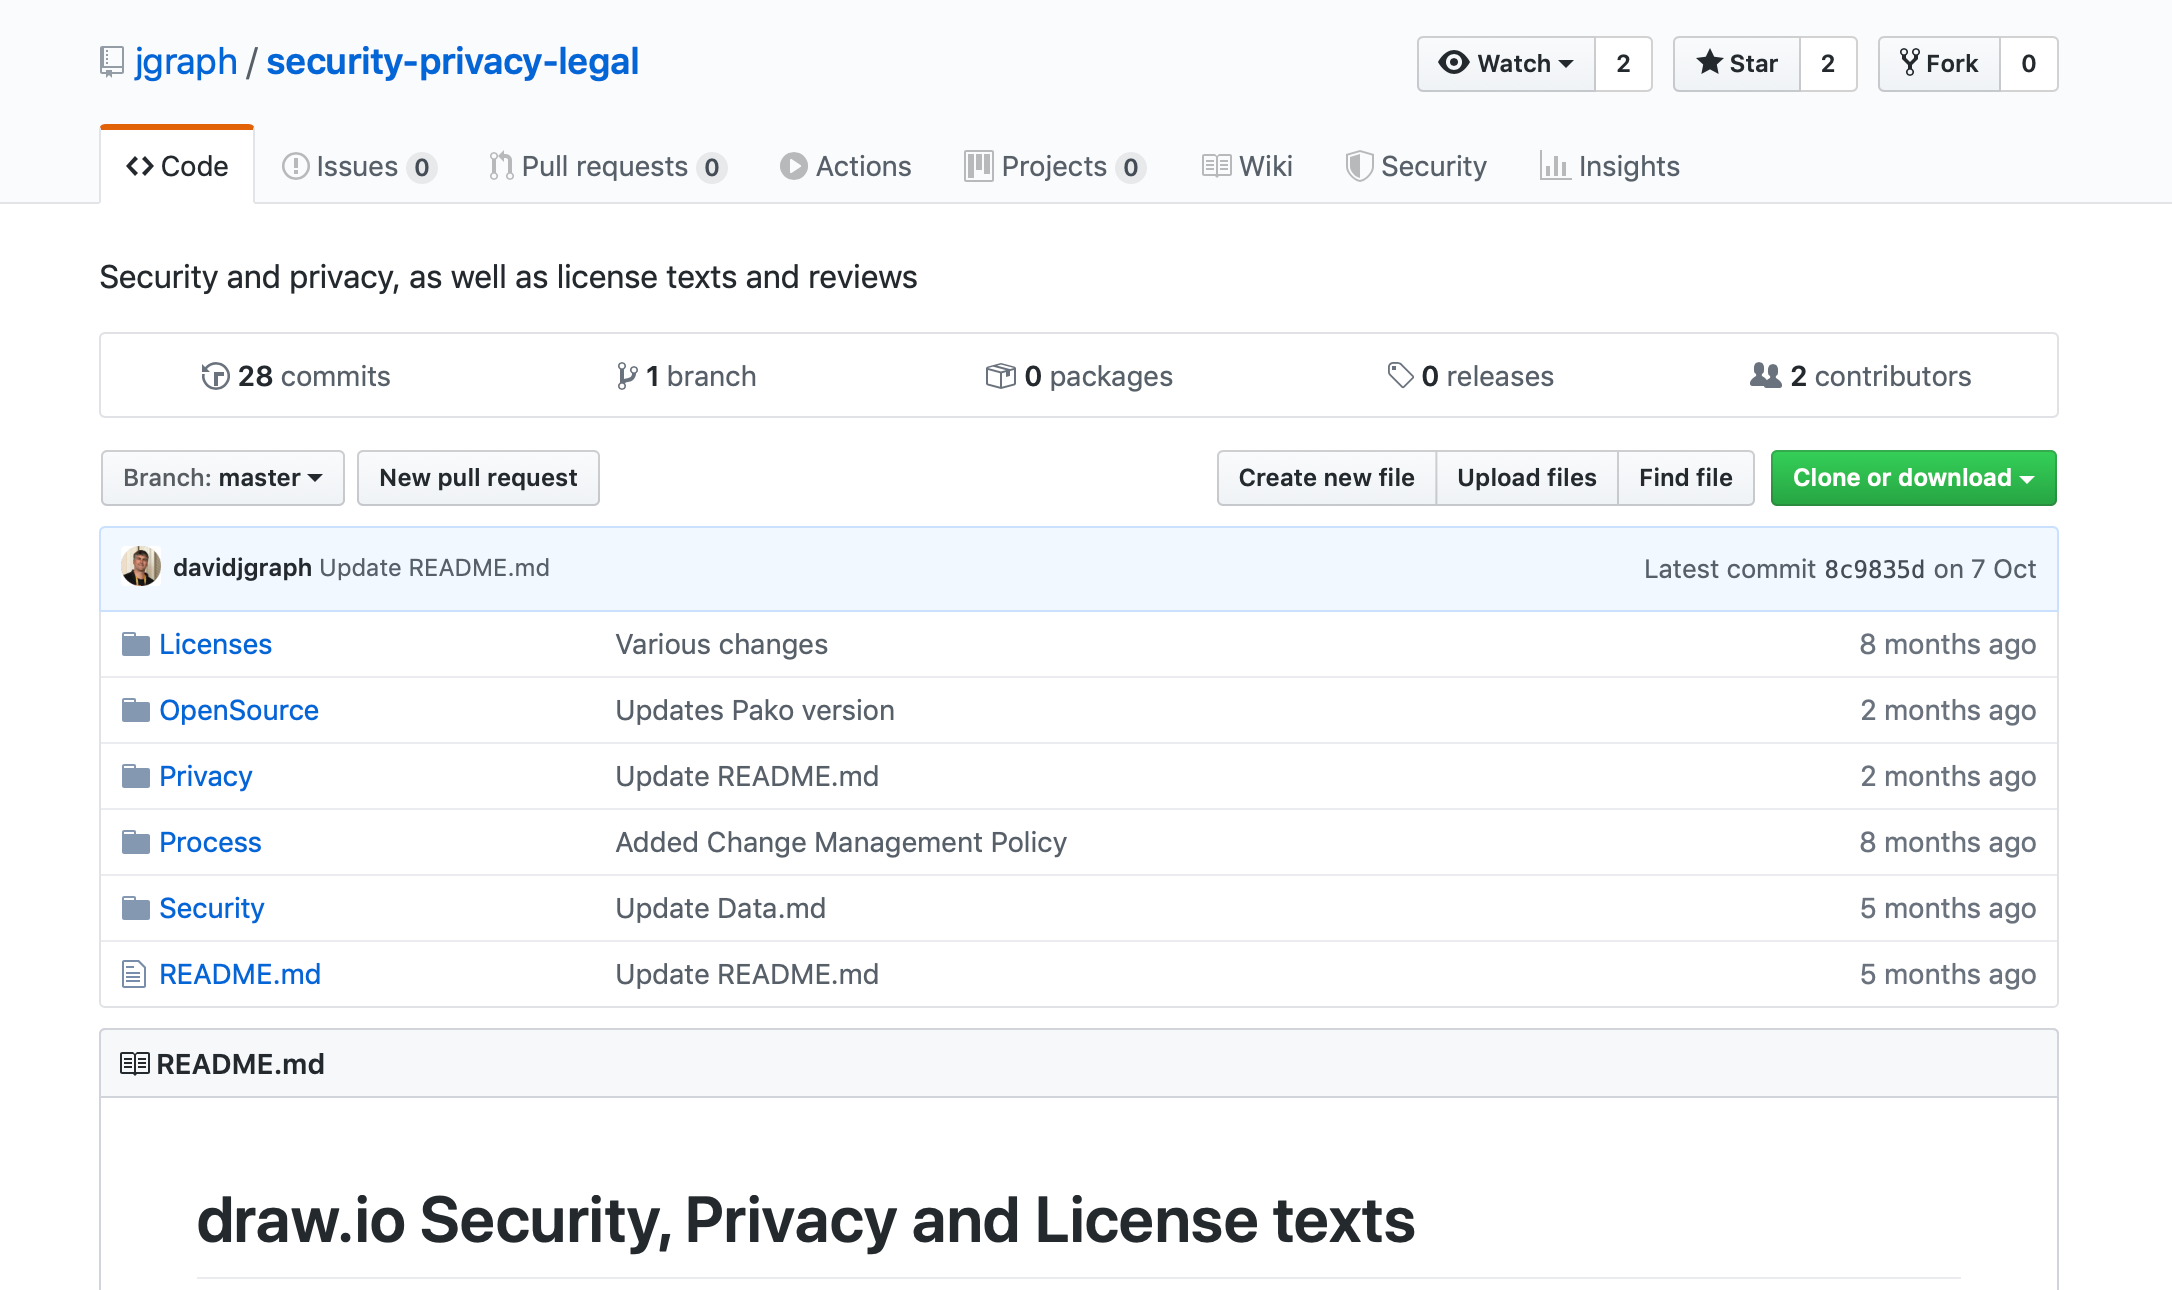 diagrams.net's versioned security, privacy and legal documentation on GitHub